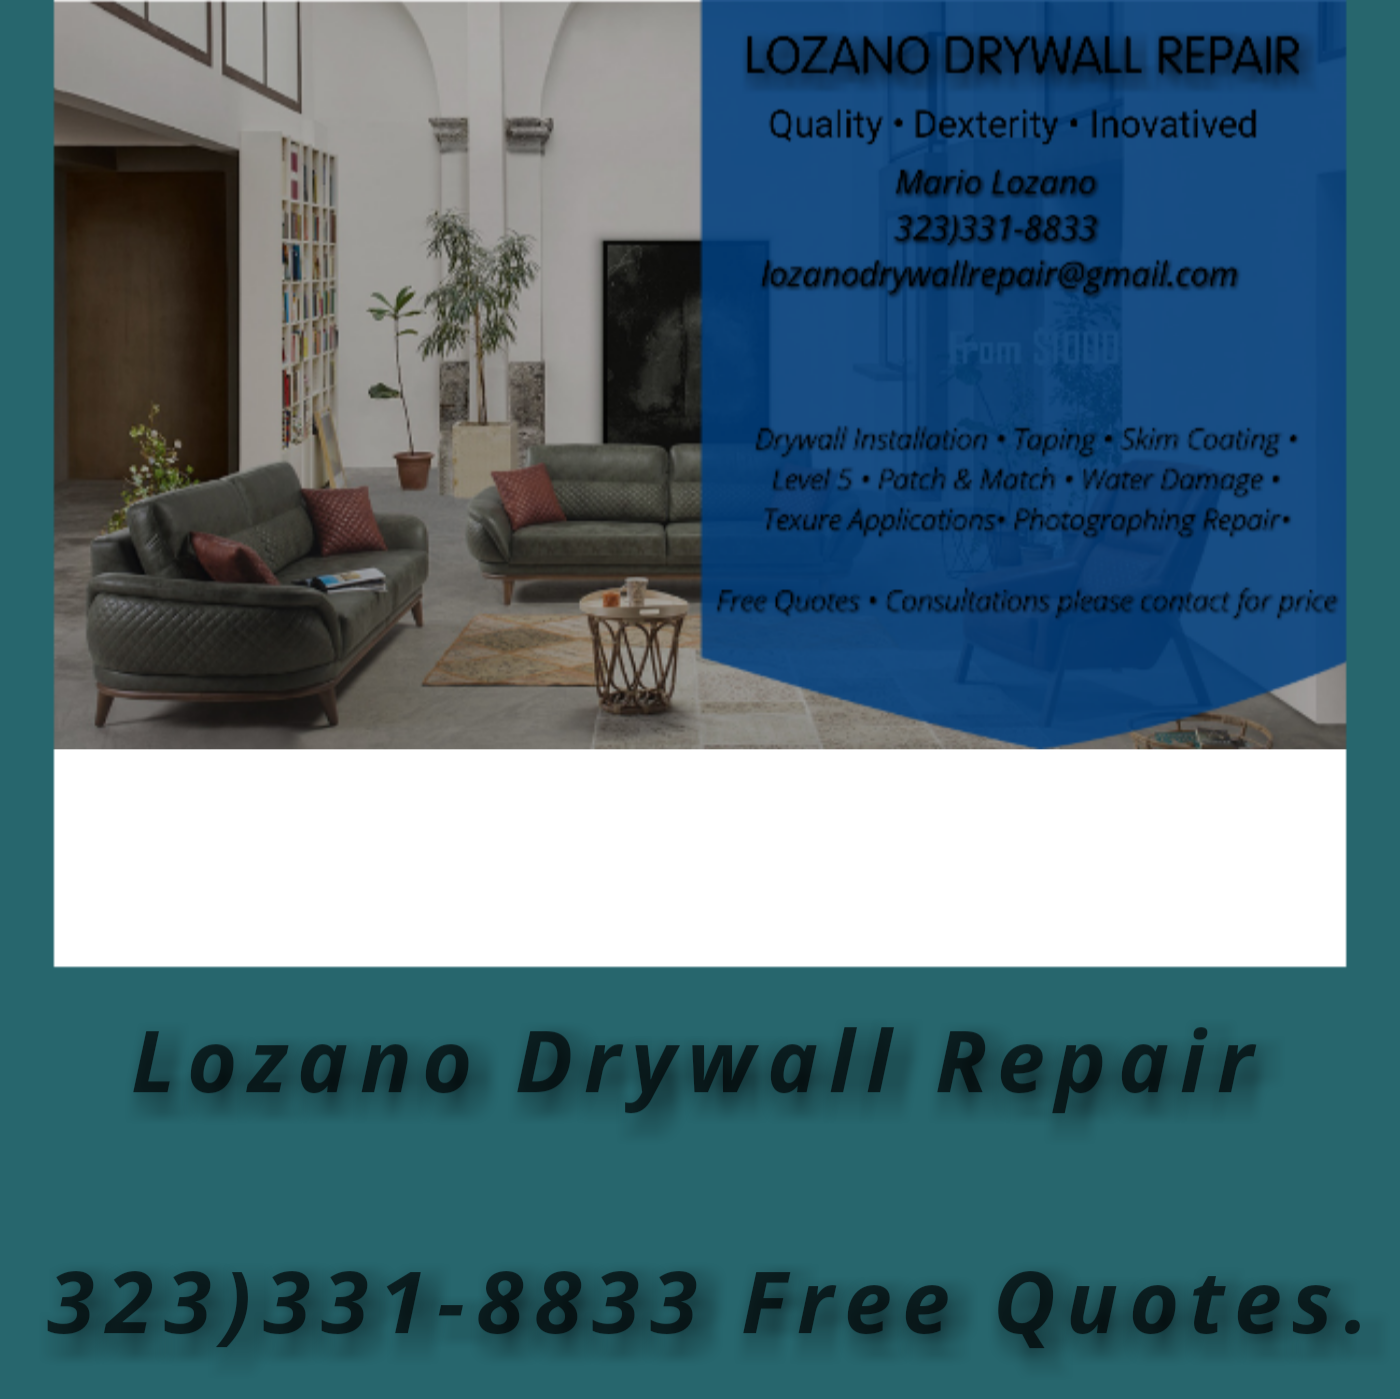 Lozano Drywall Repair